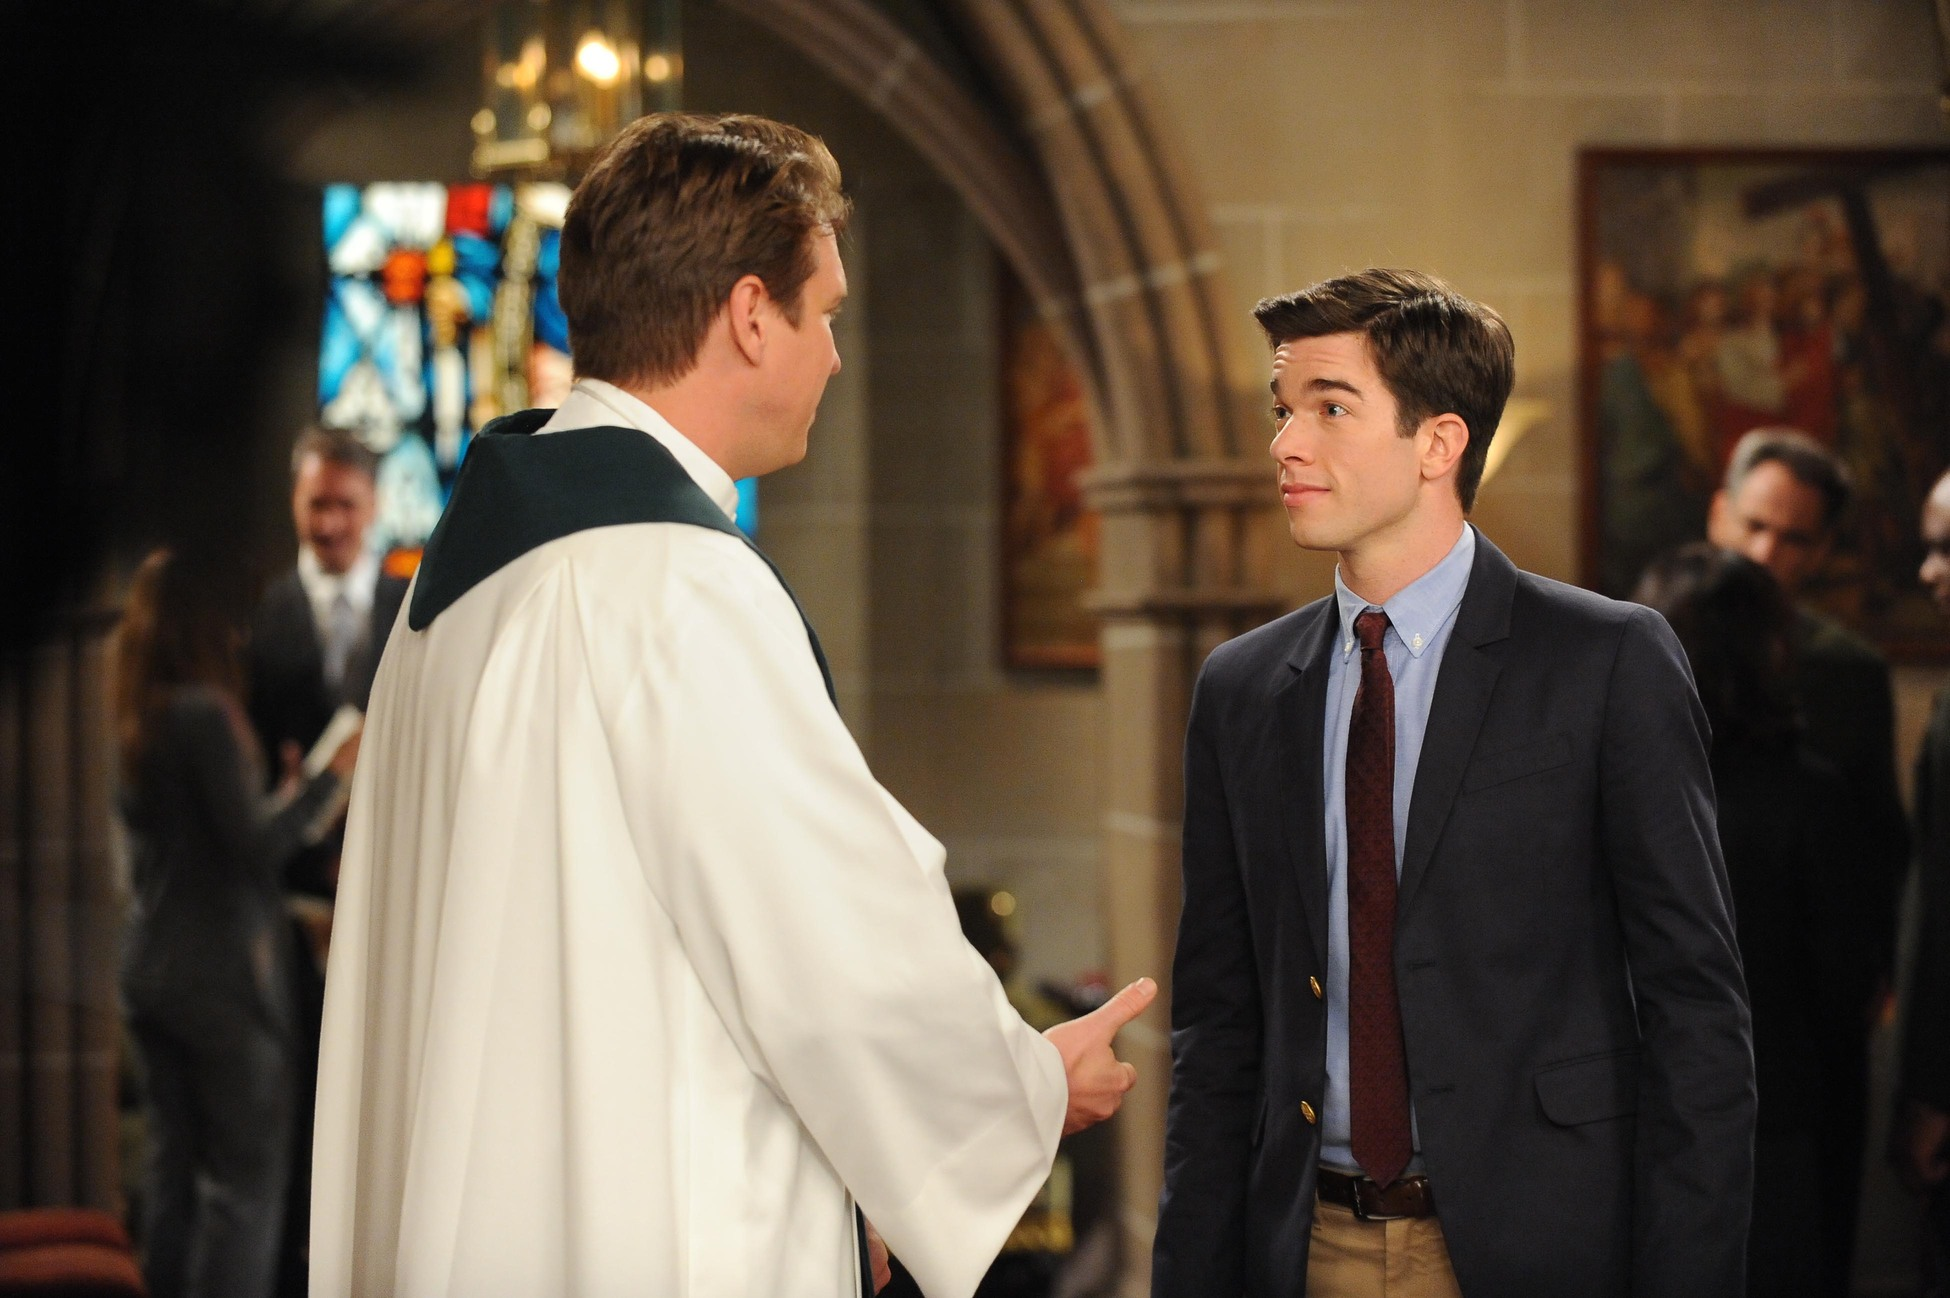 It's not quite time for last rites for Mulaney just yet.